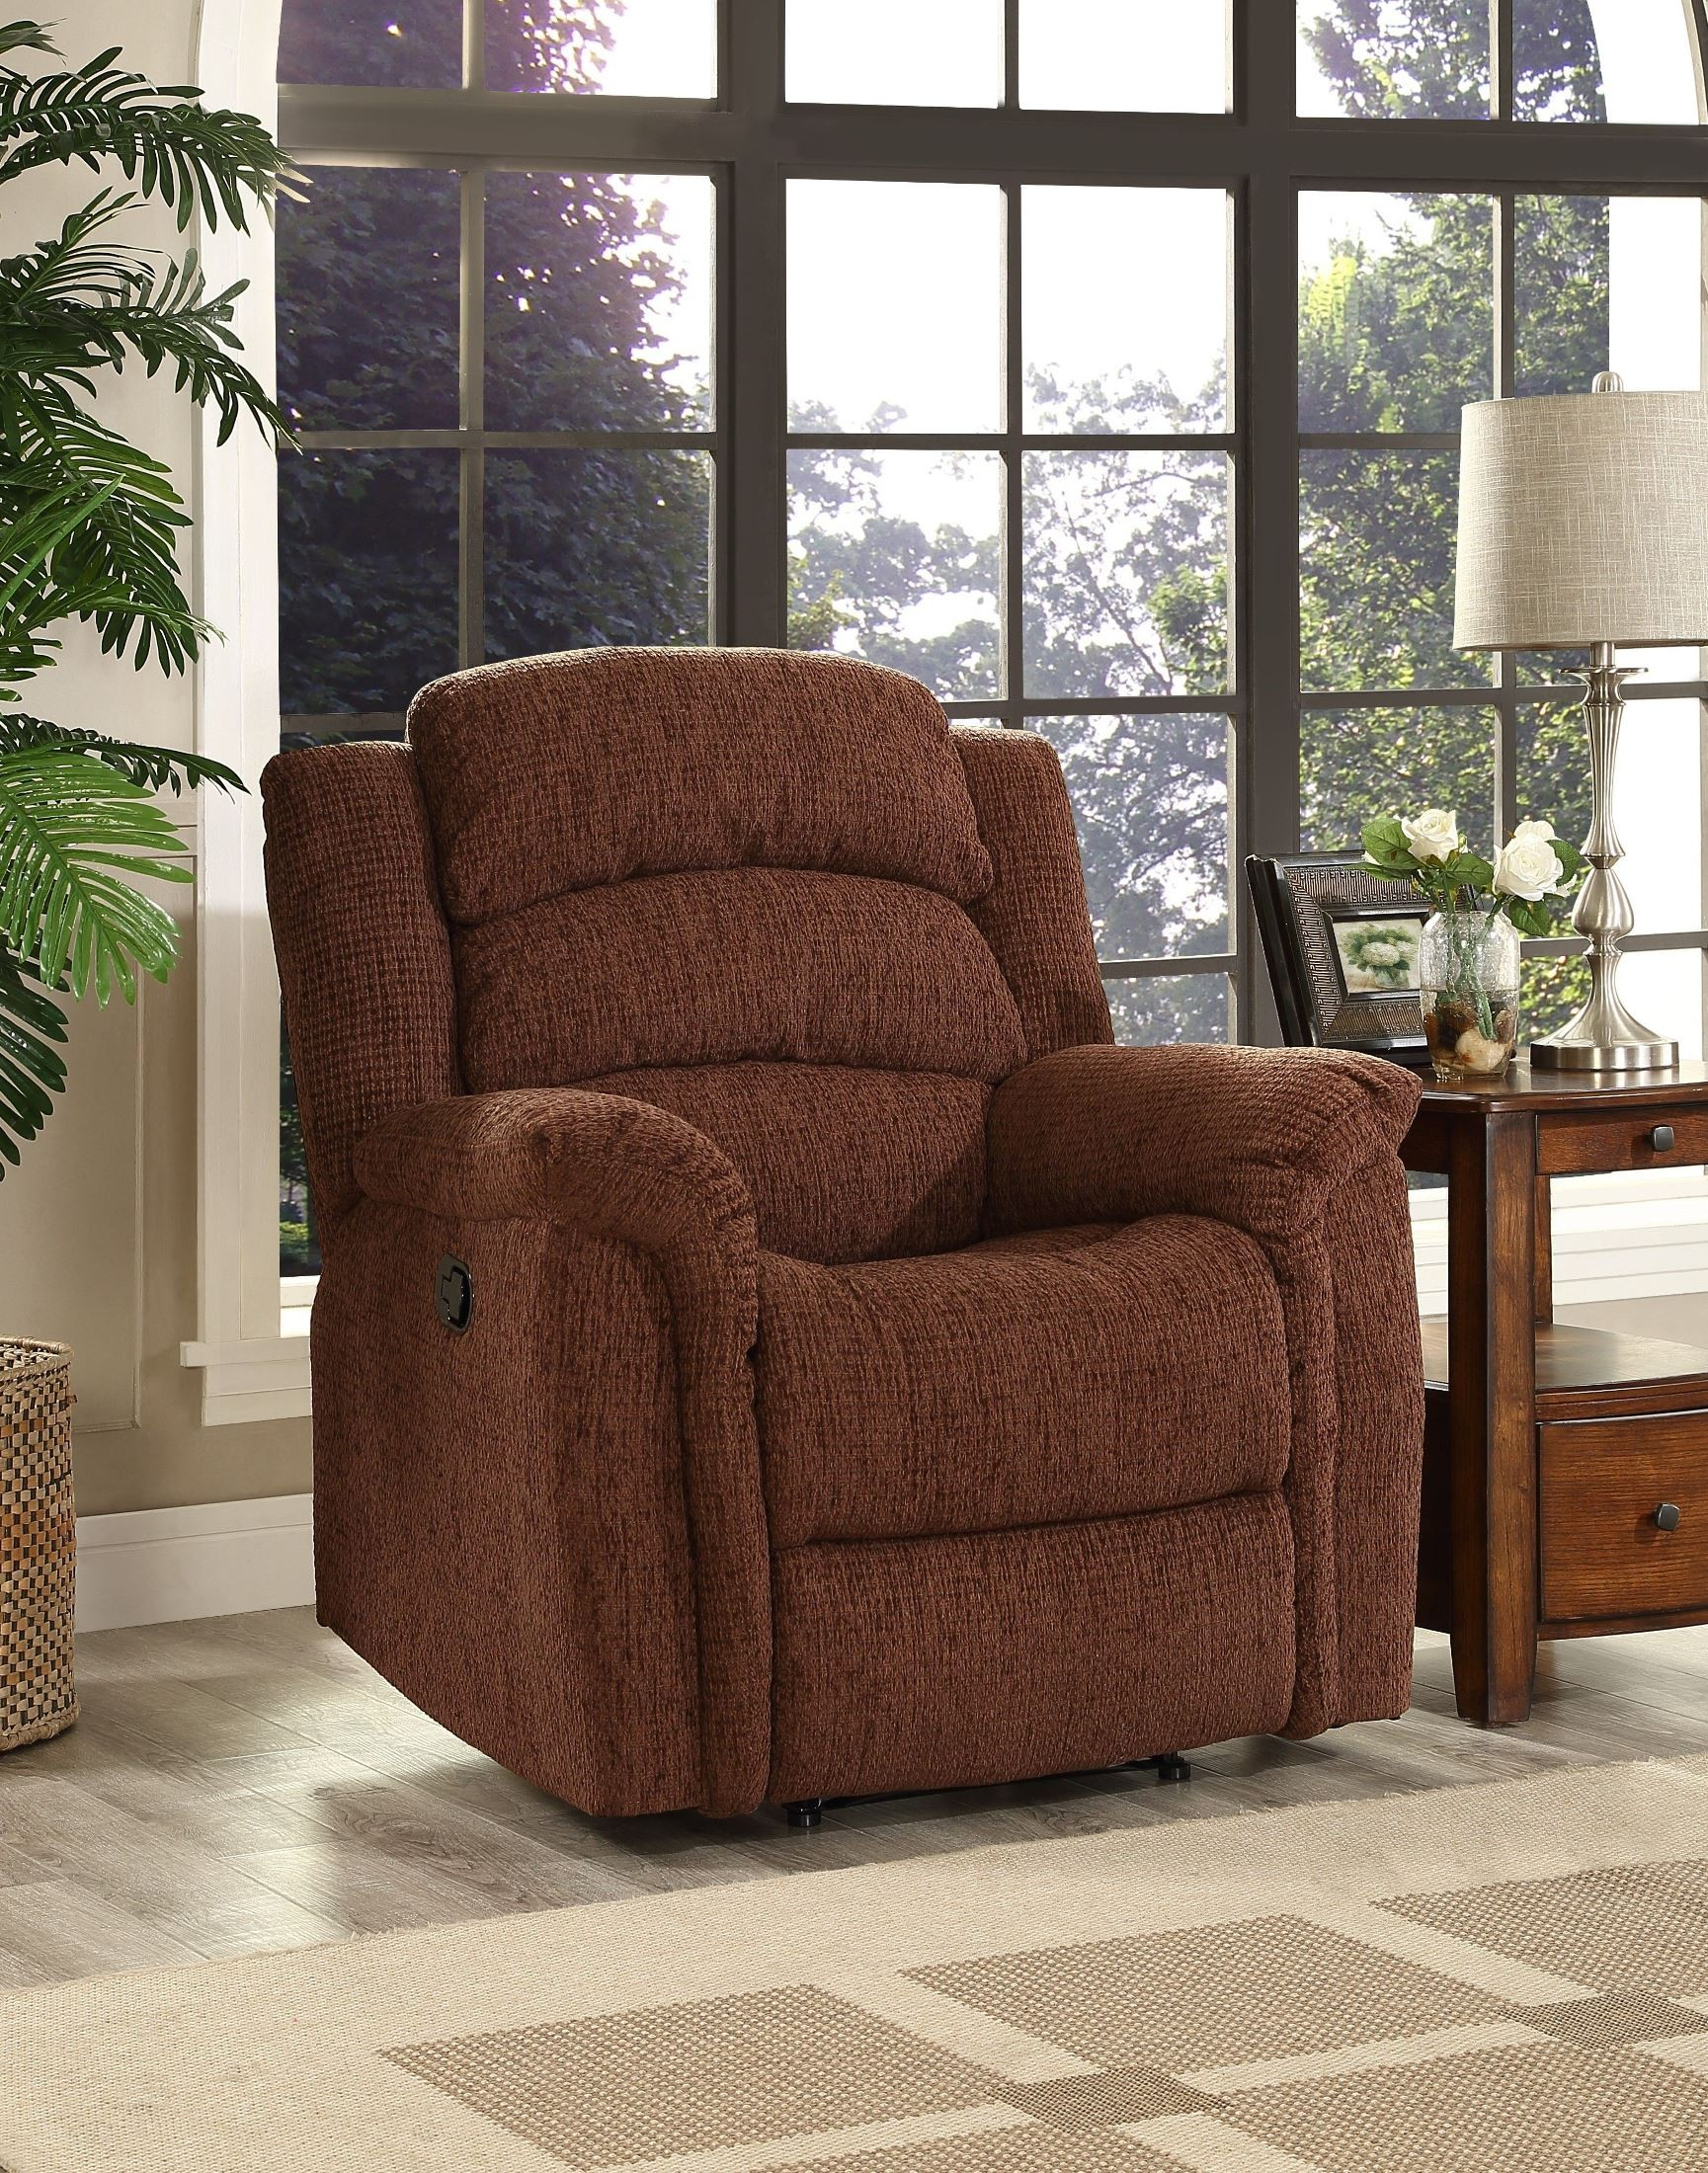 Ross fudge dual reclining living room set from new for Affordable furniture 290